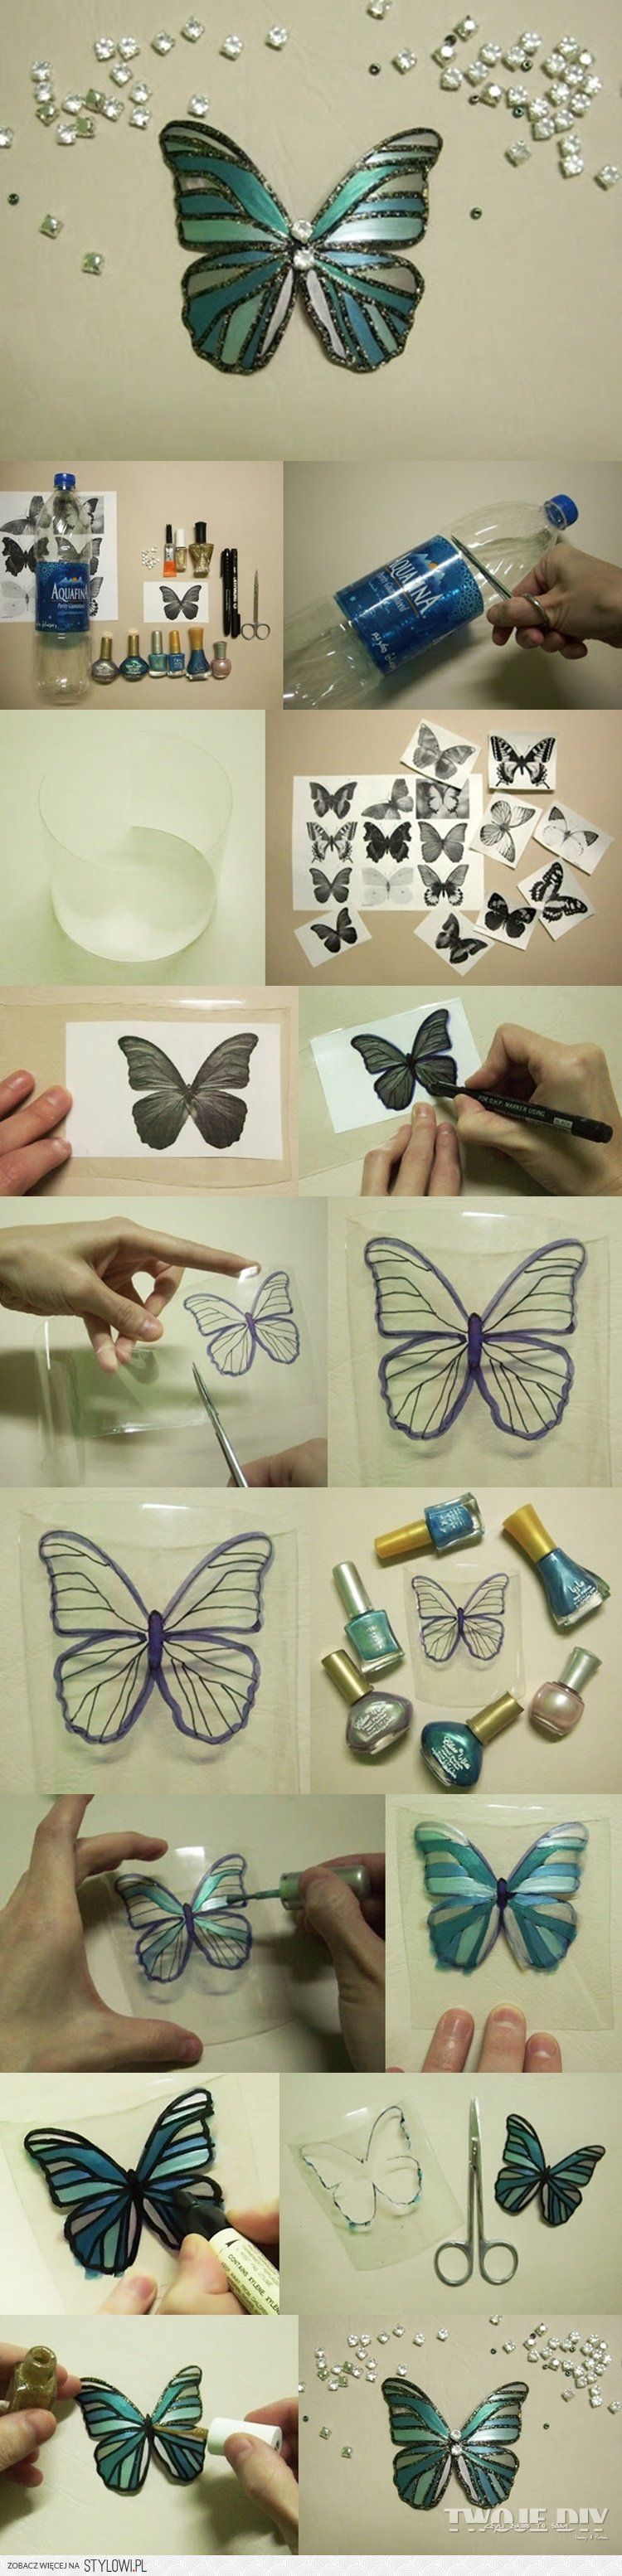 Butterflies from a plastic bottle with their own hands. Butterfly Patterns 71